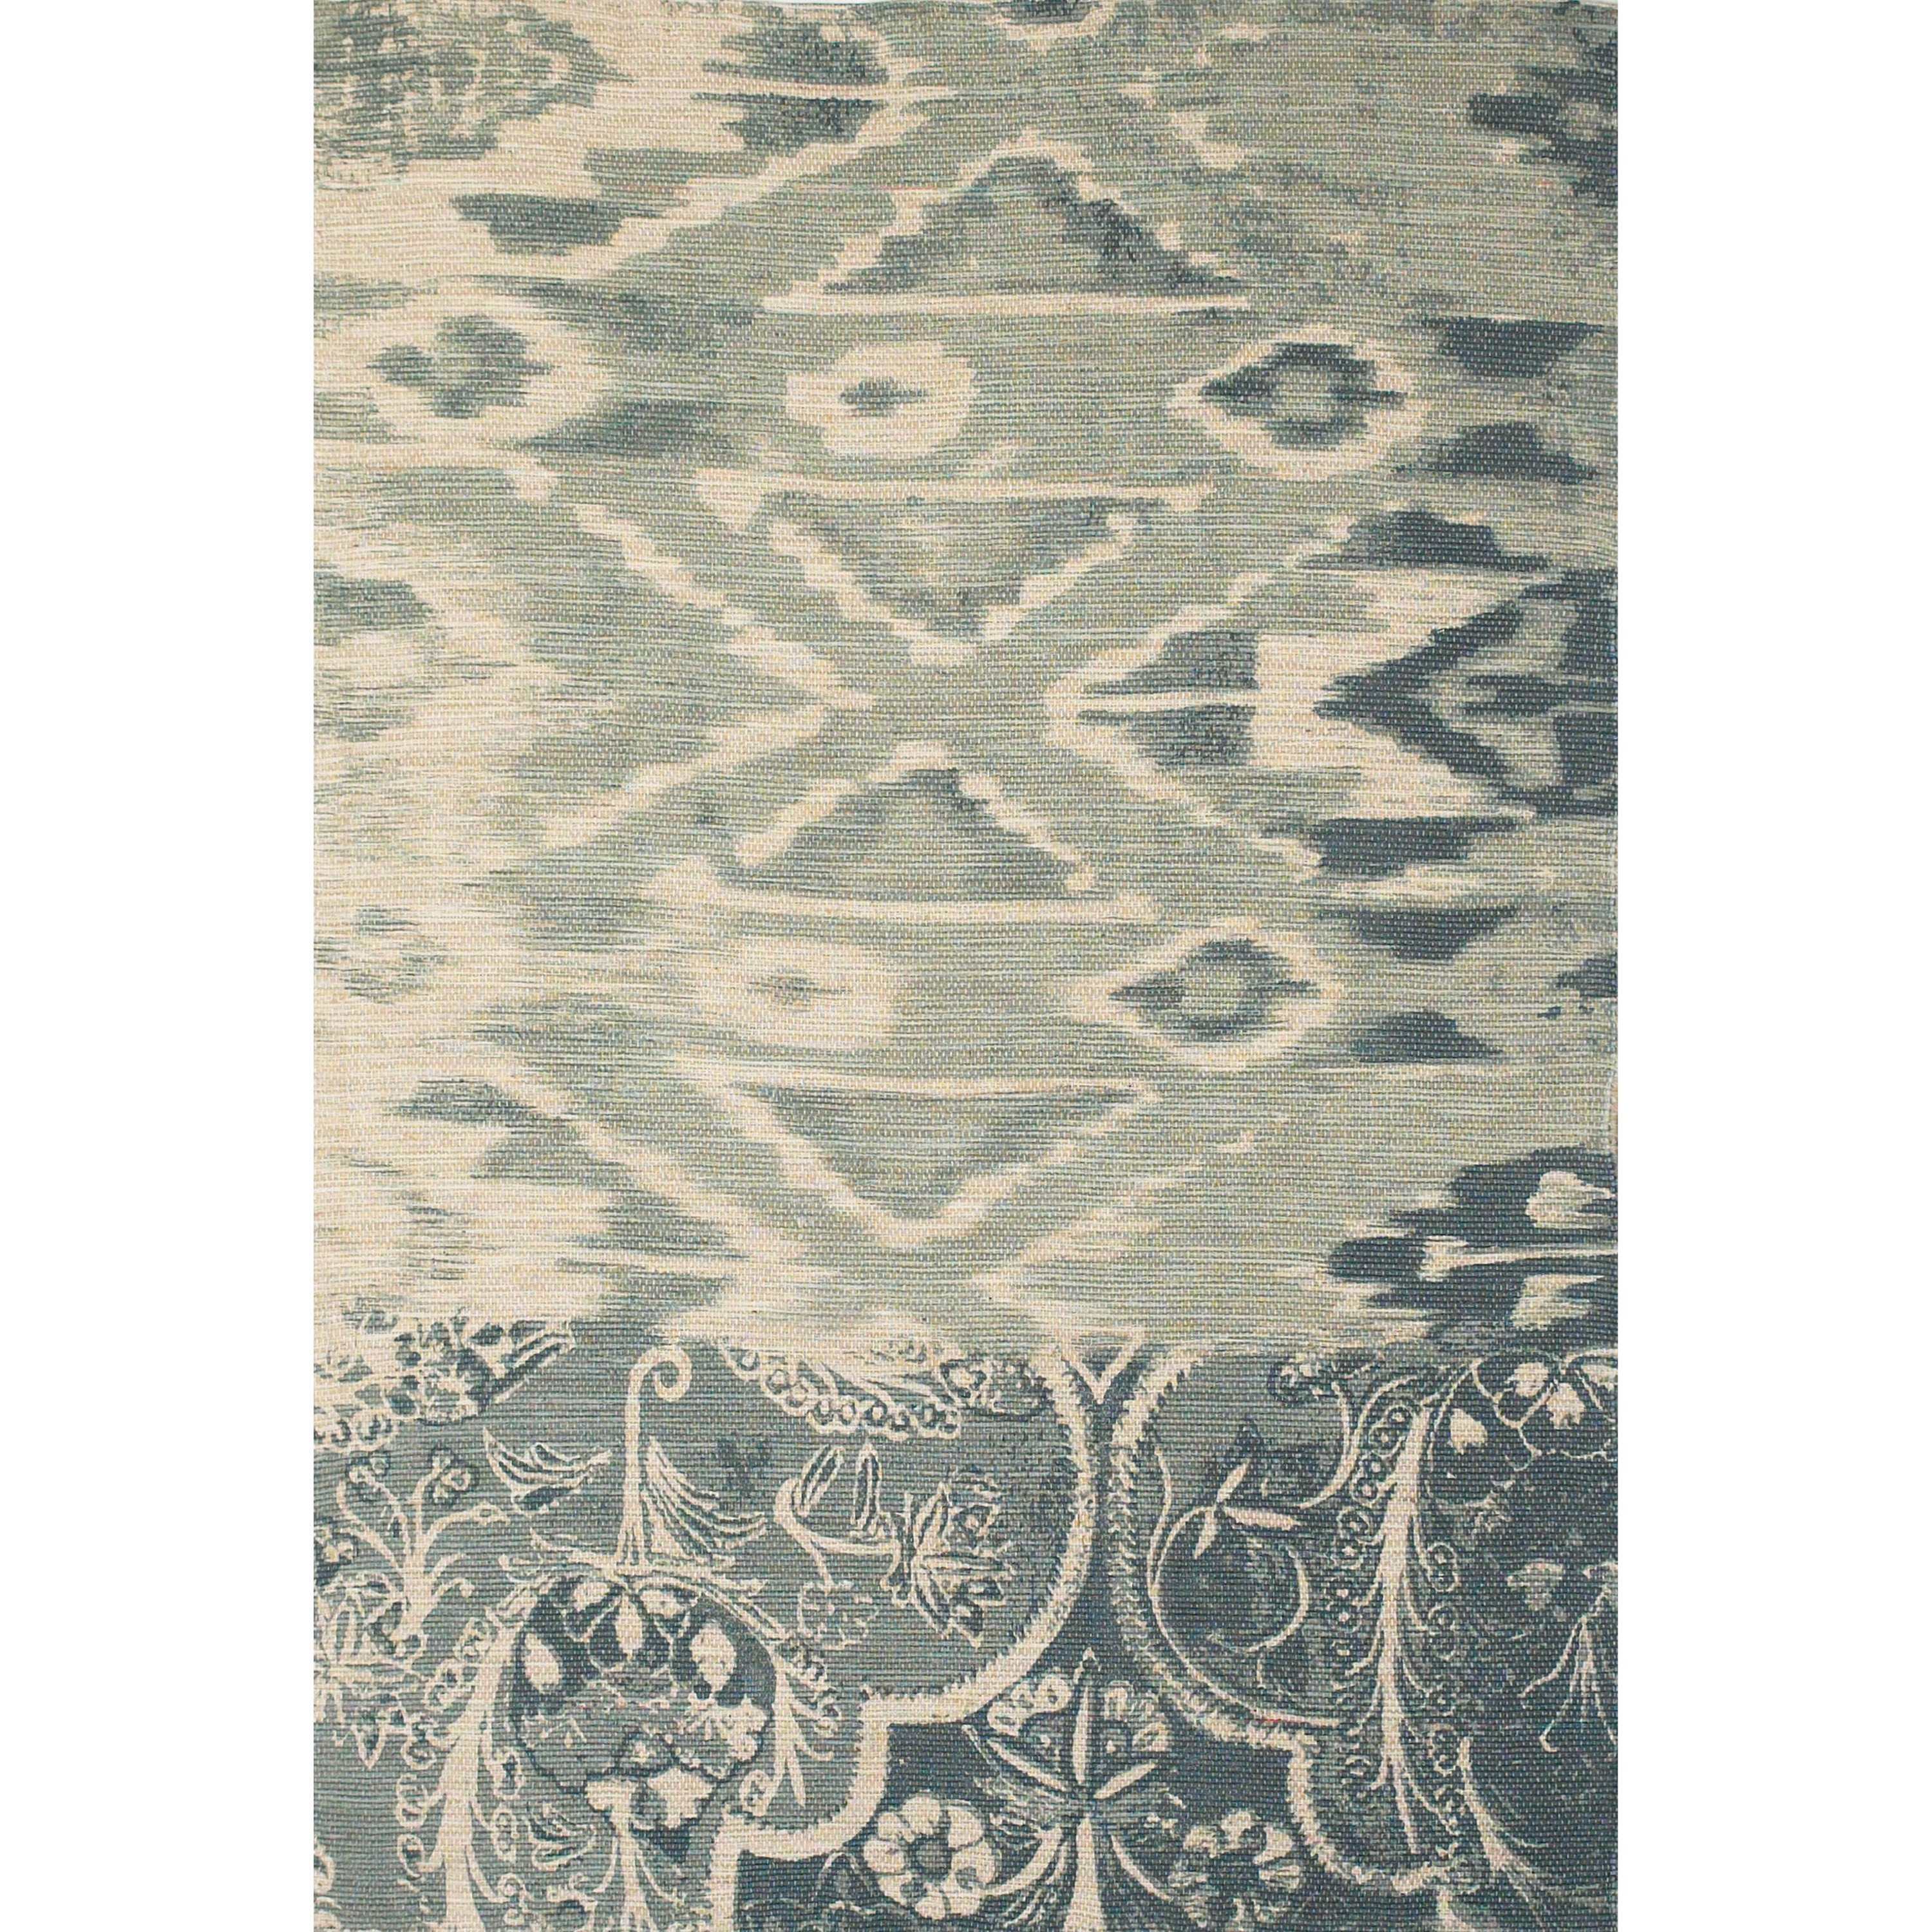 Coronado Light Blue 4' x 6' Area Rug by Feizy Rugs at Sprintz Furniture